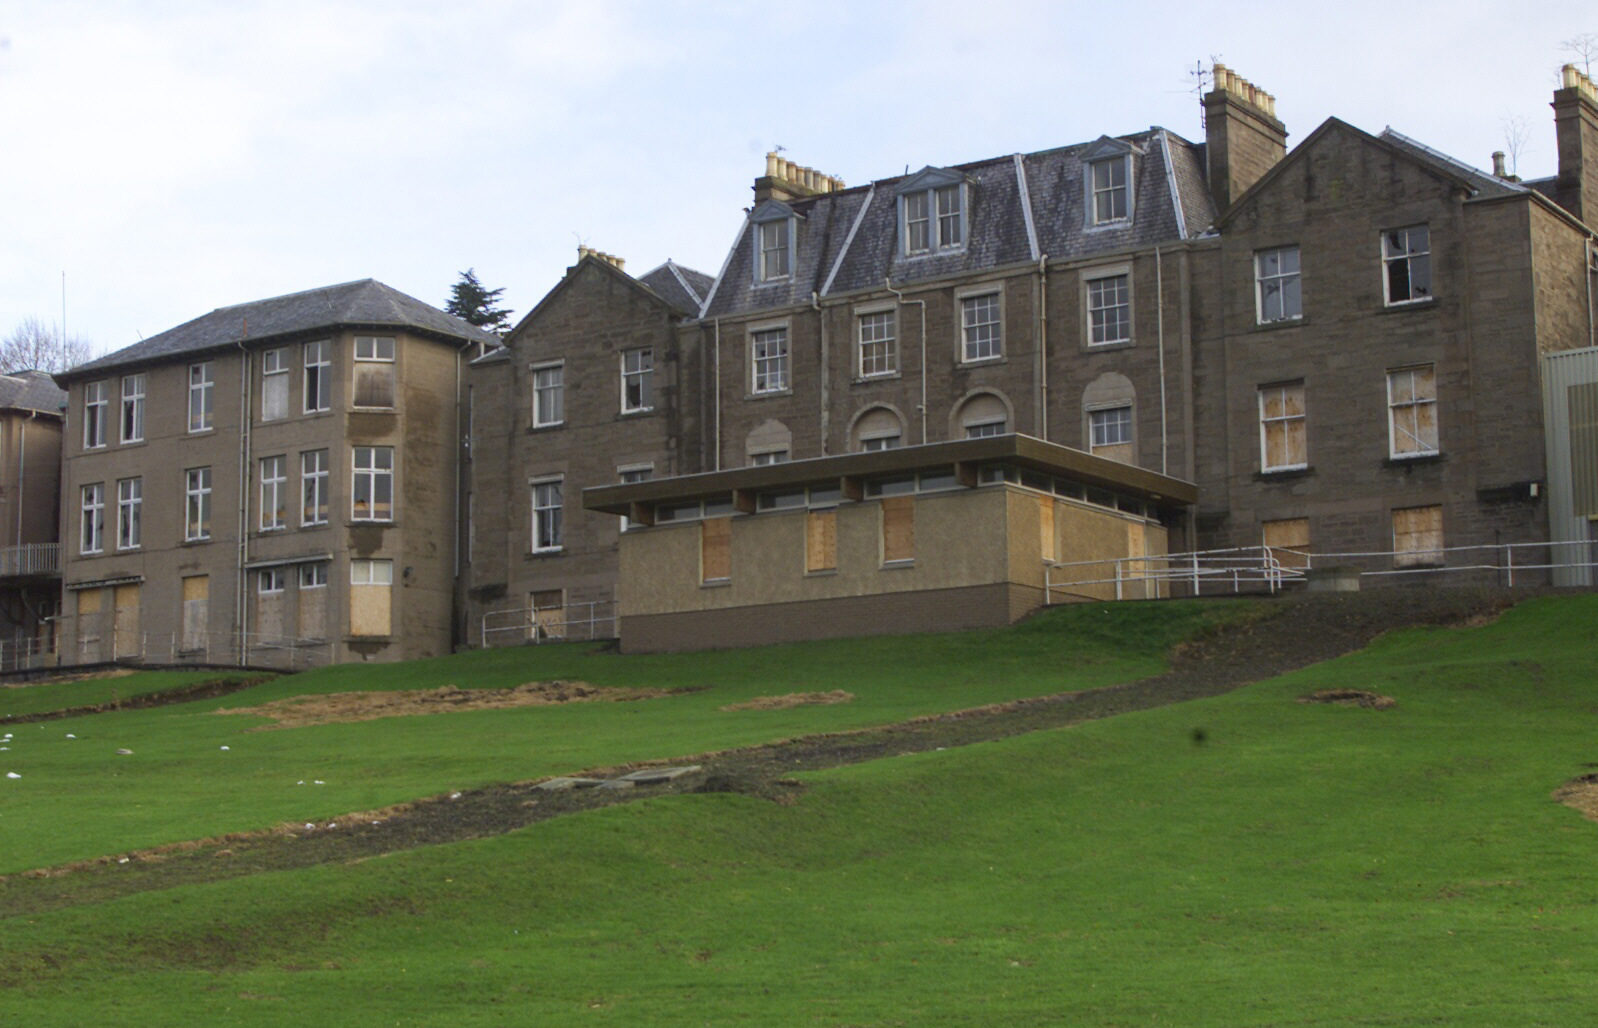 Hillside Hospital was demolished in 2007.